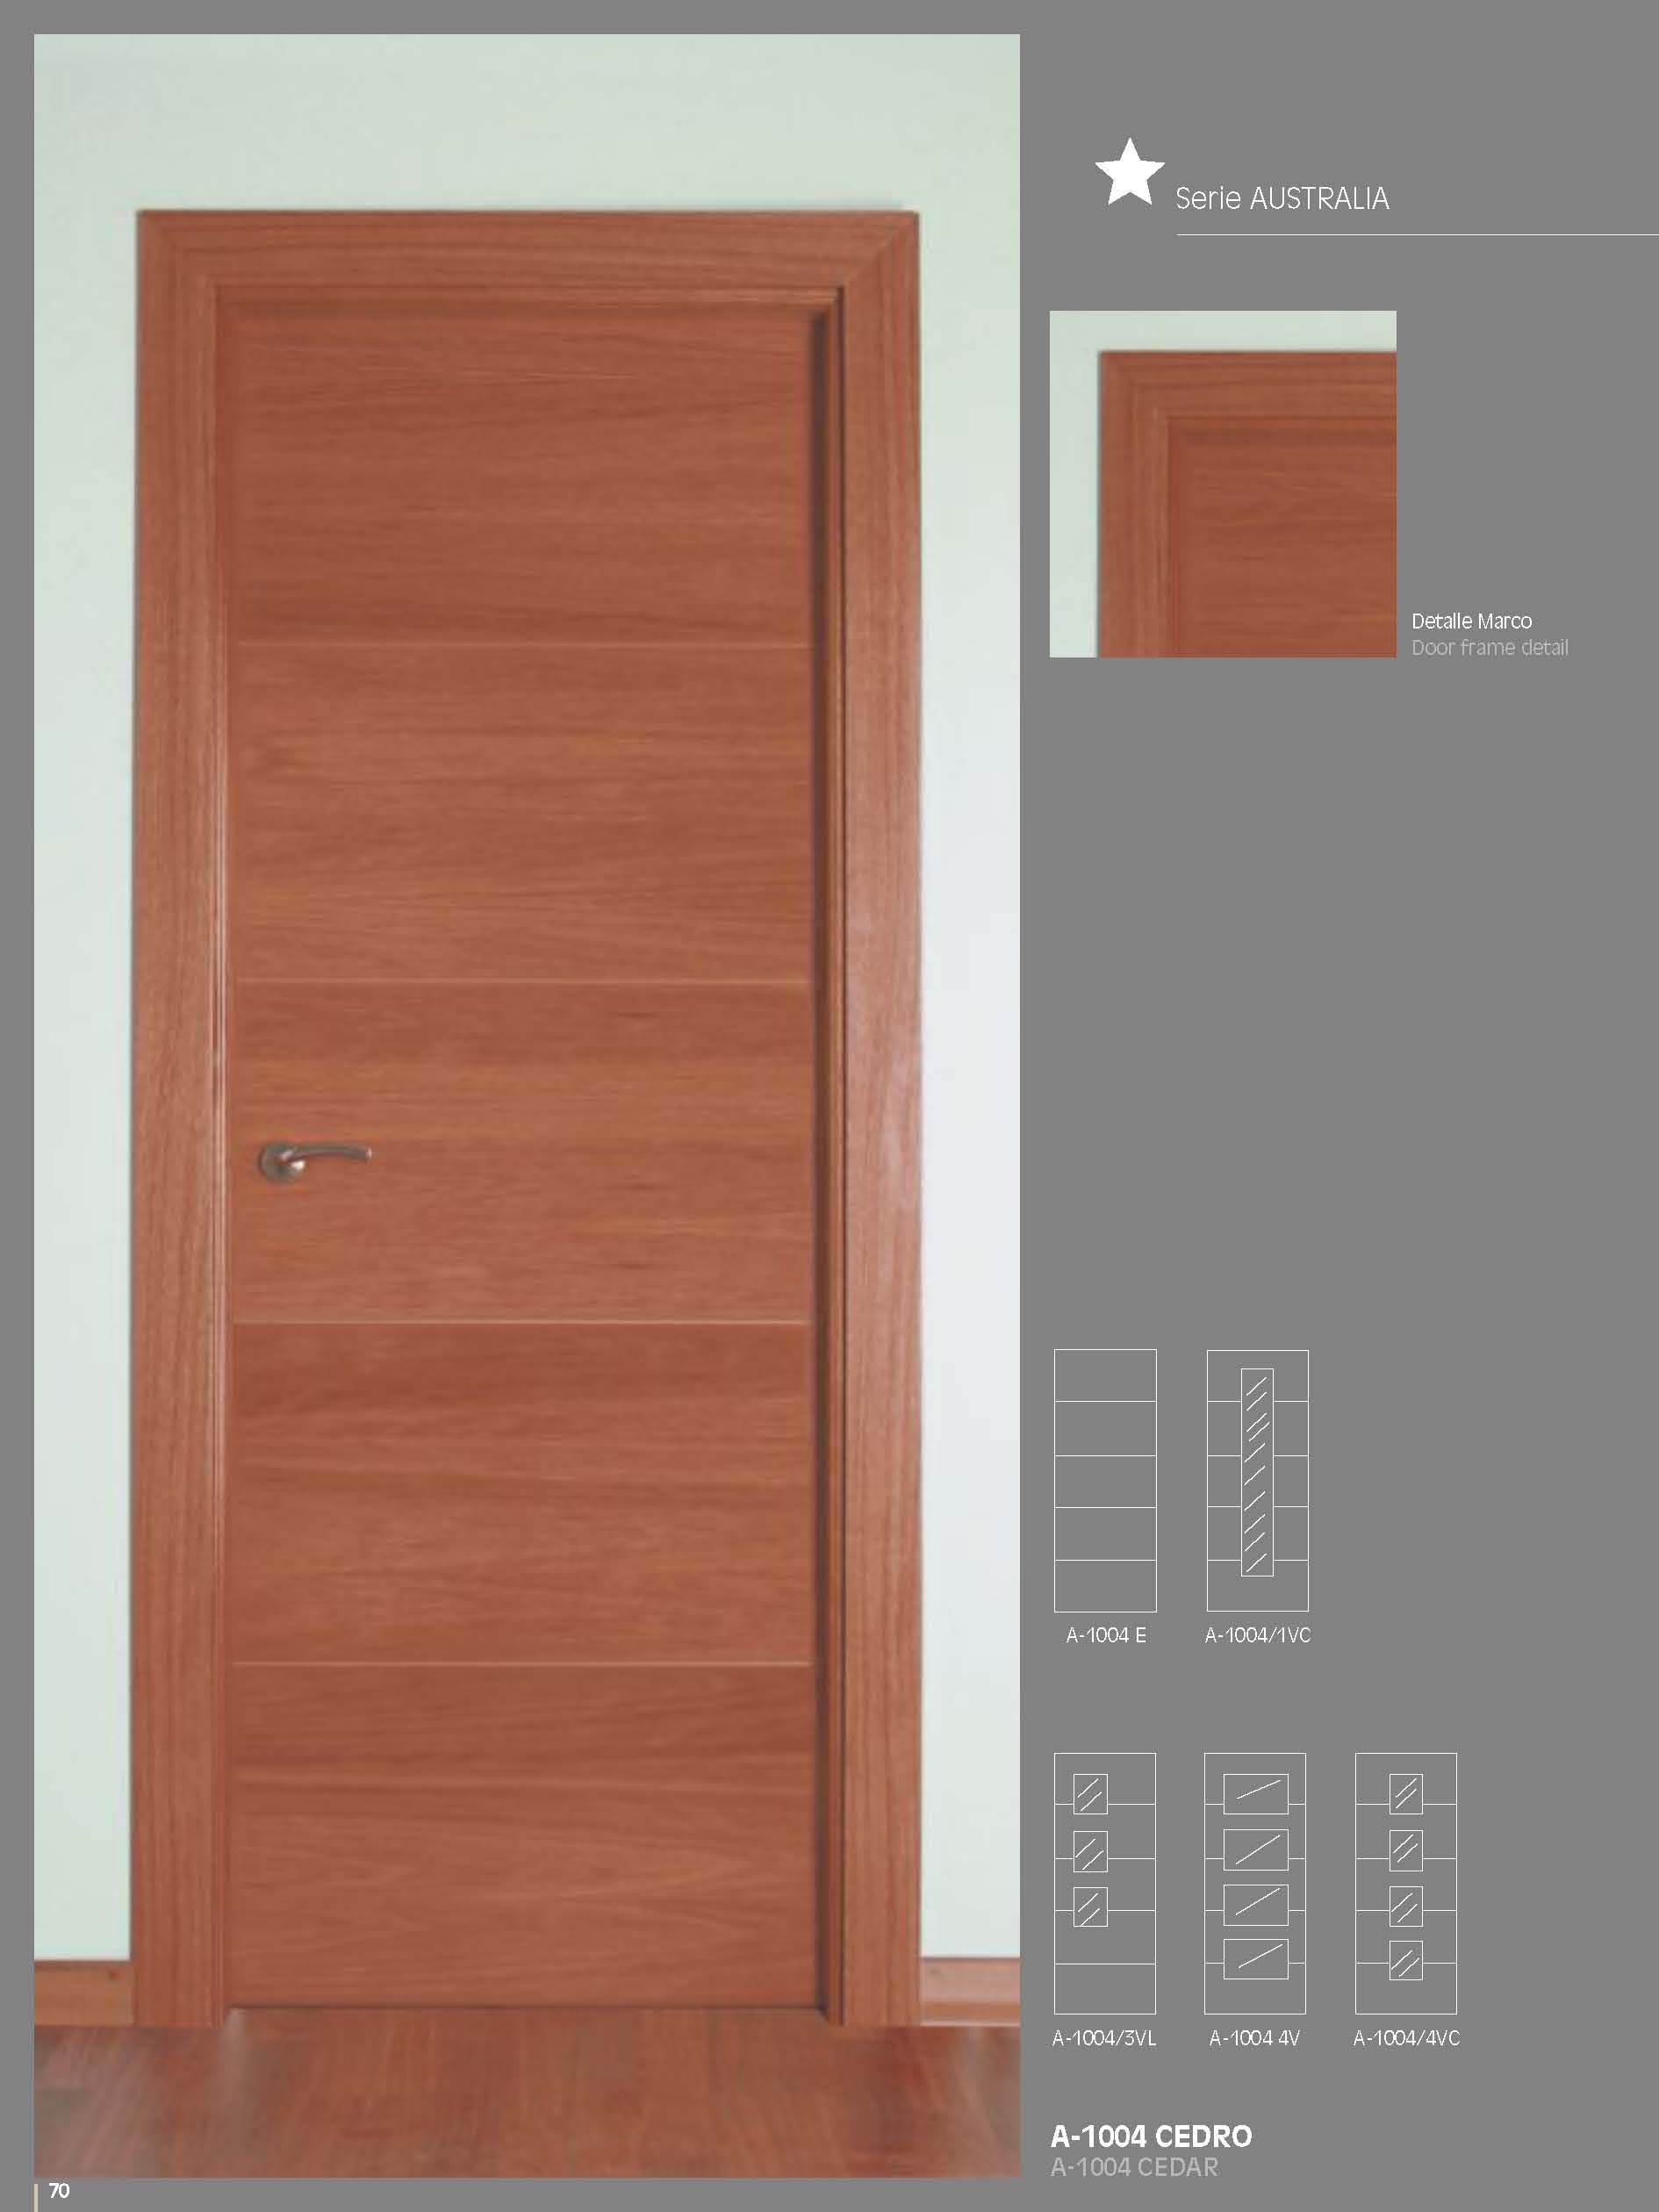 Artema A1004 Cedar Glass Inside Door Bespoke Sizes